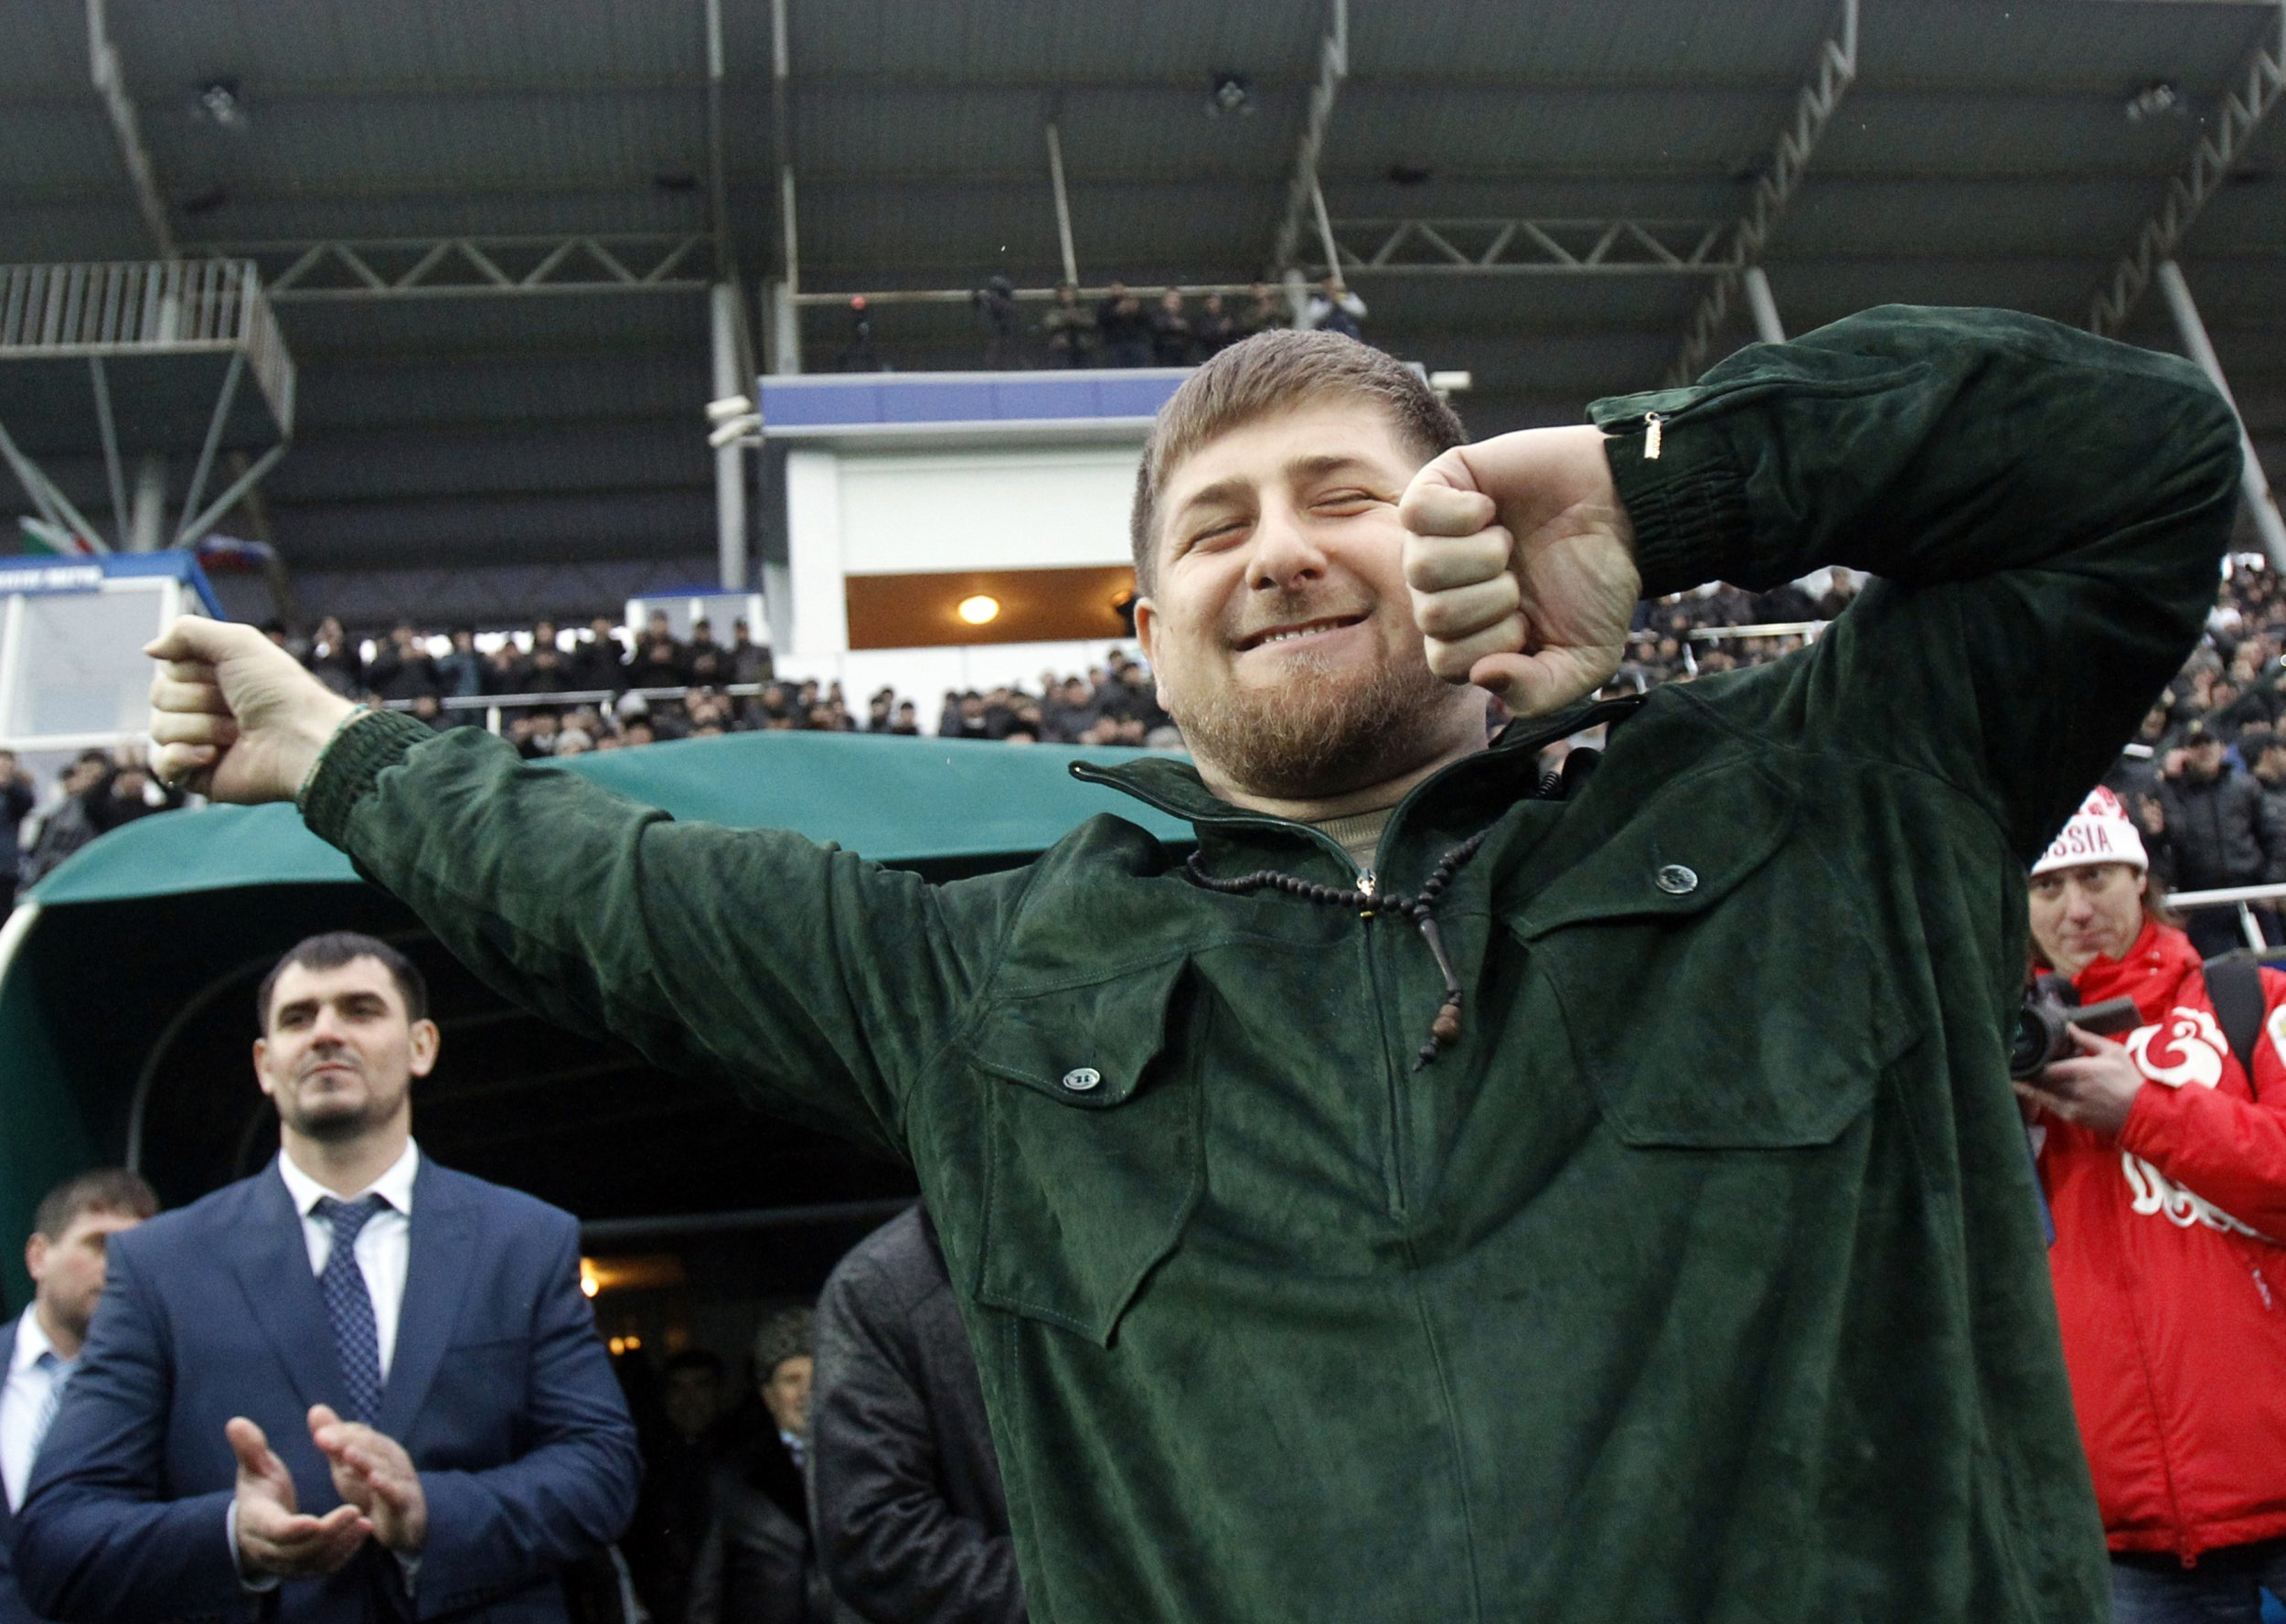 Ramzan Kadyrov dances in a stadium